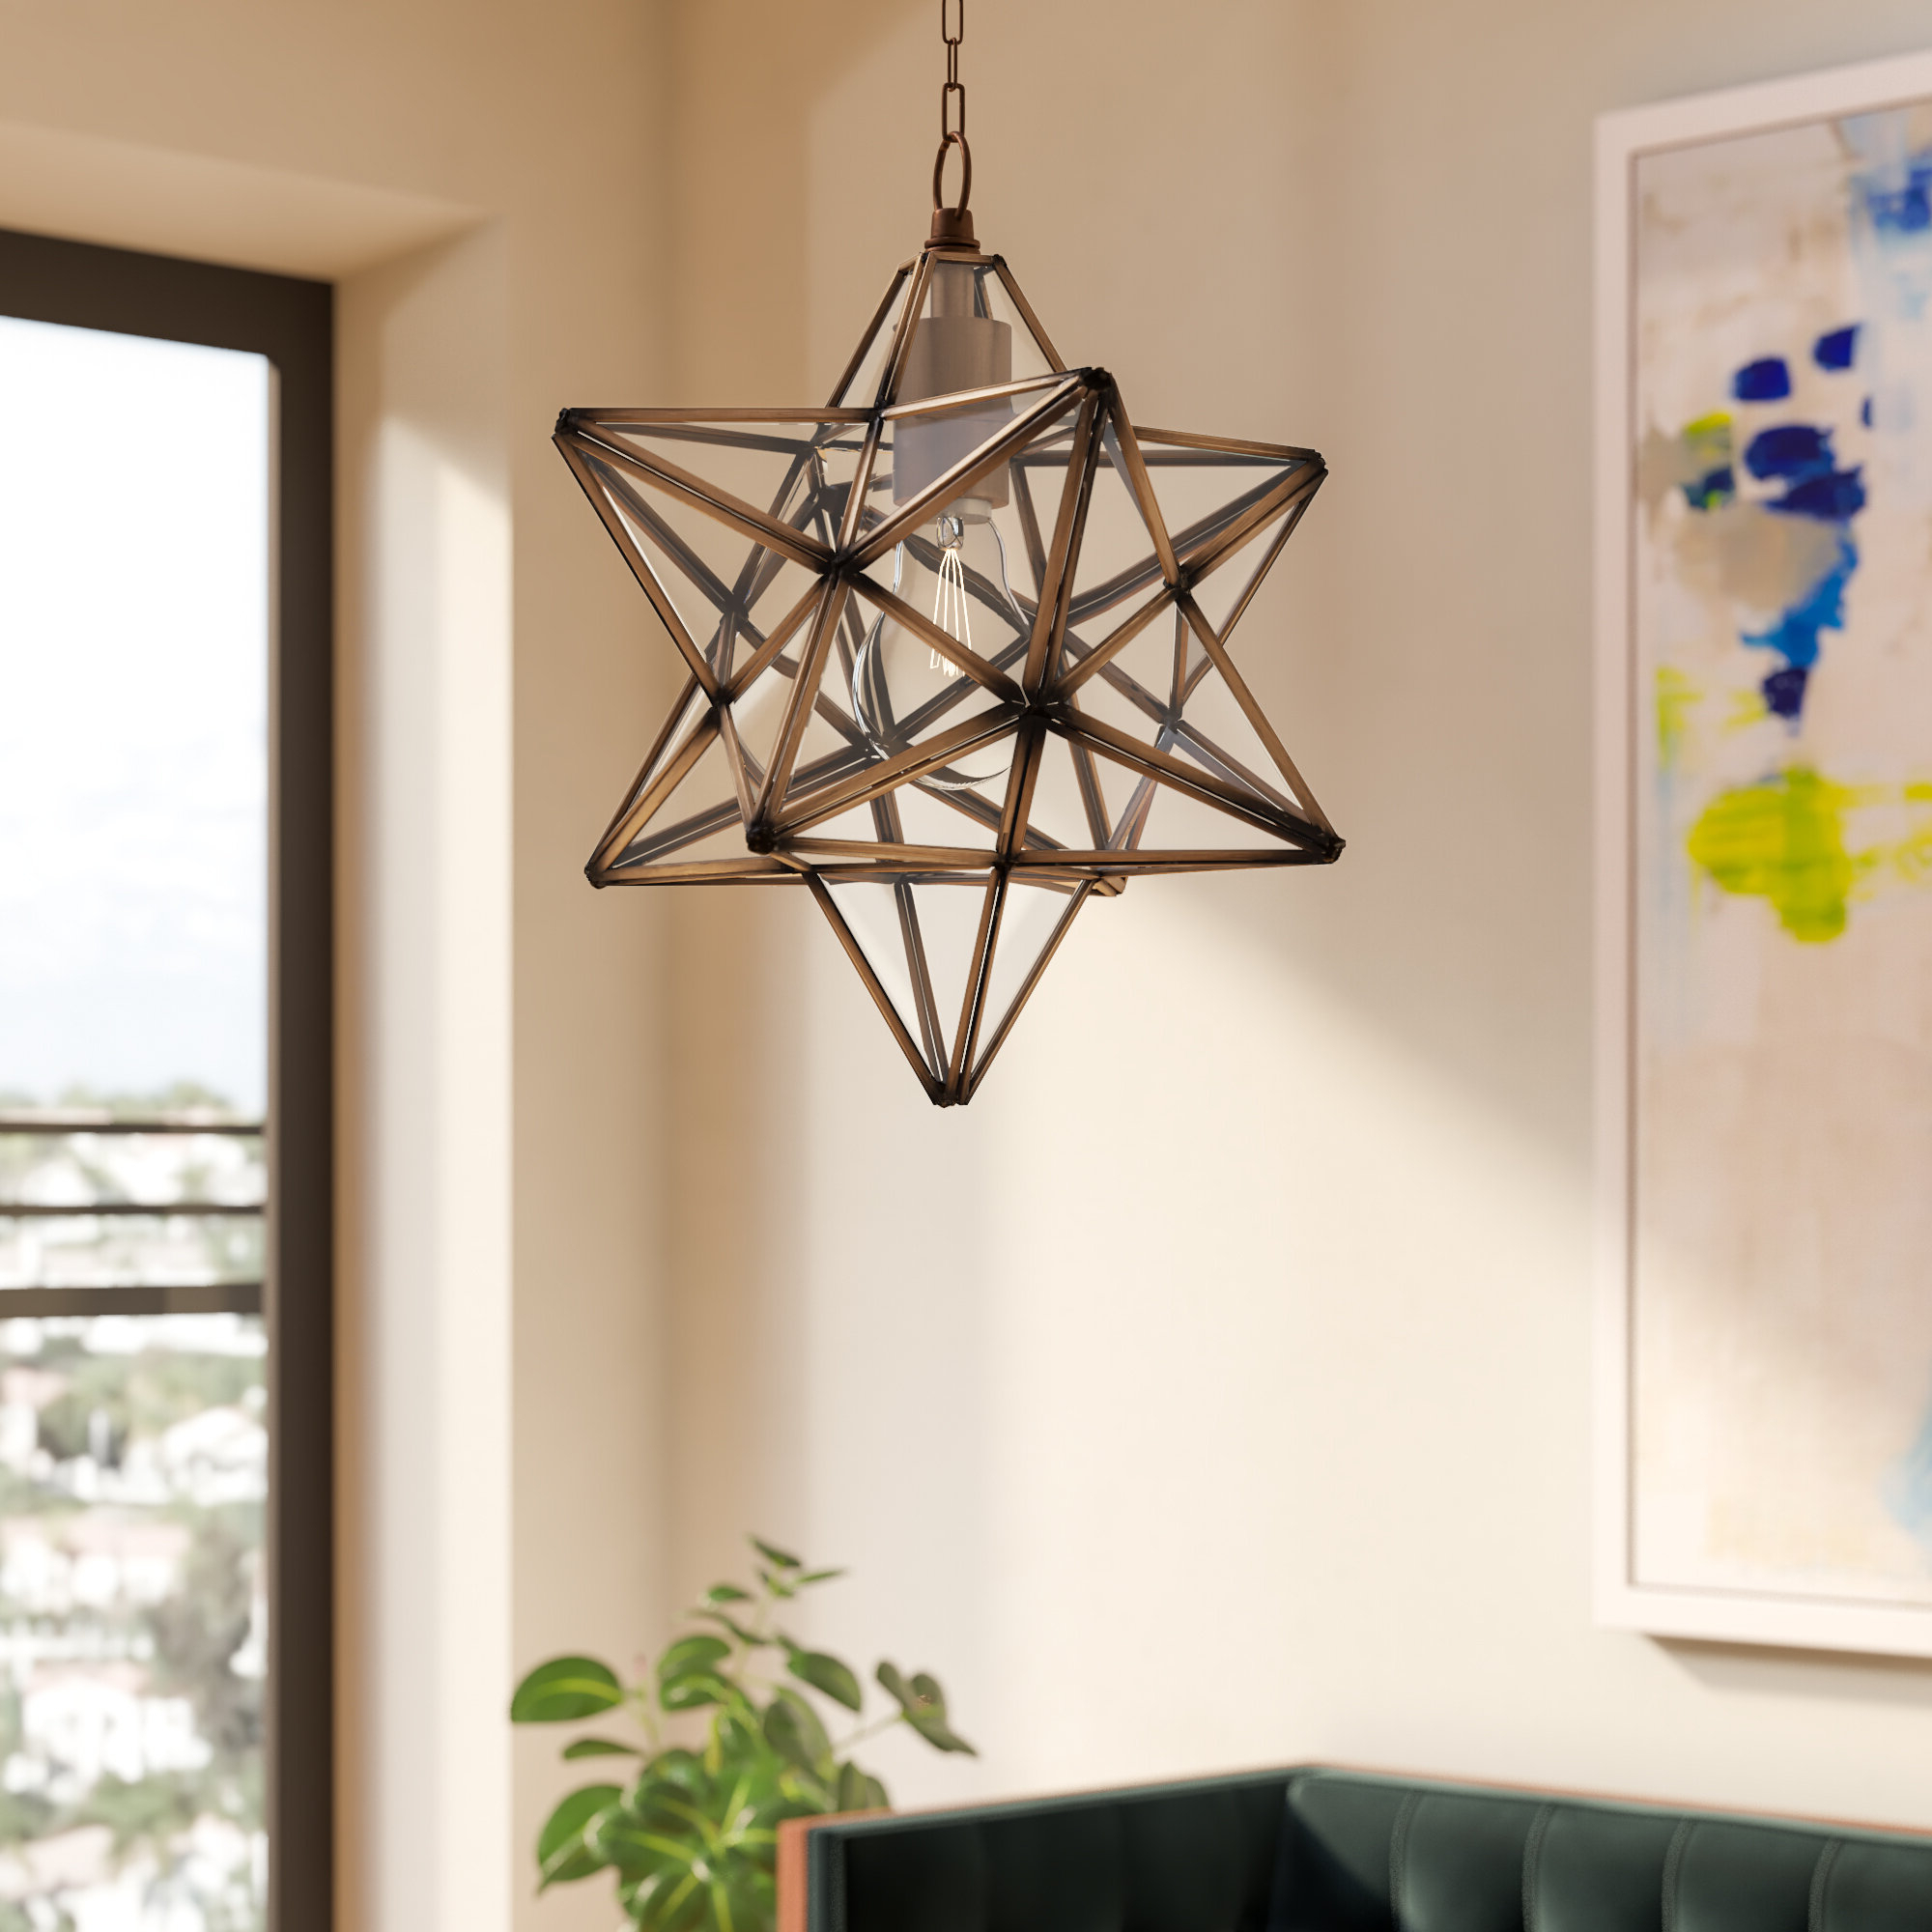 Preferred Shuler 1 Light Single Star Pendant Inside 1 Light Single Star Pendants (View 4 of 20)